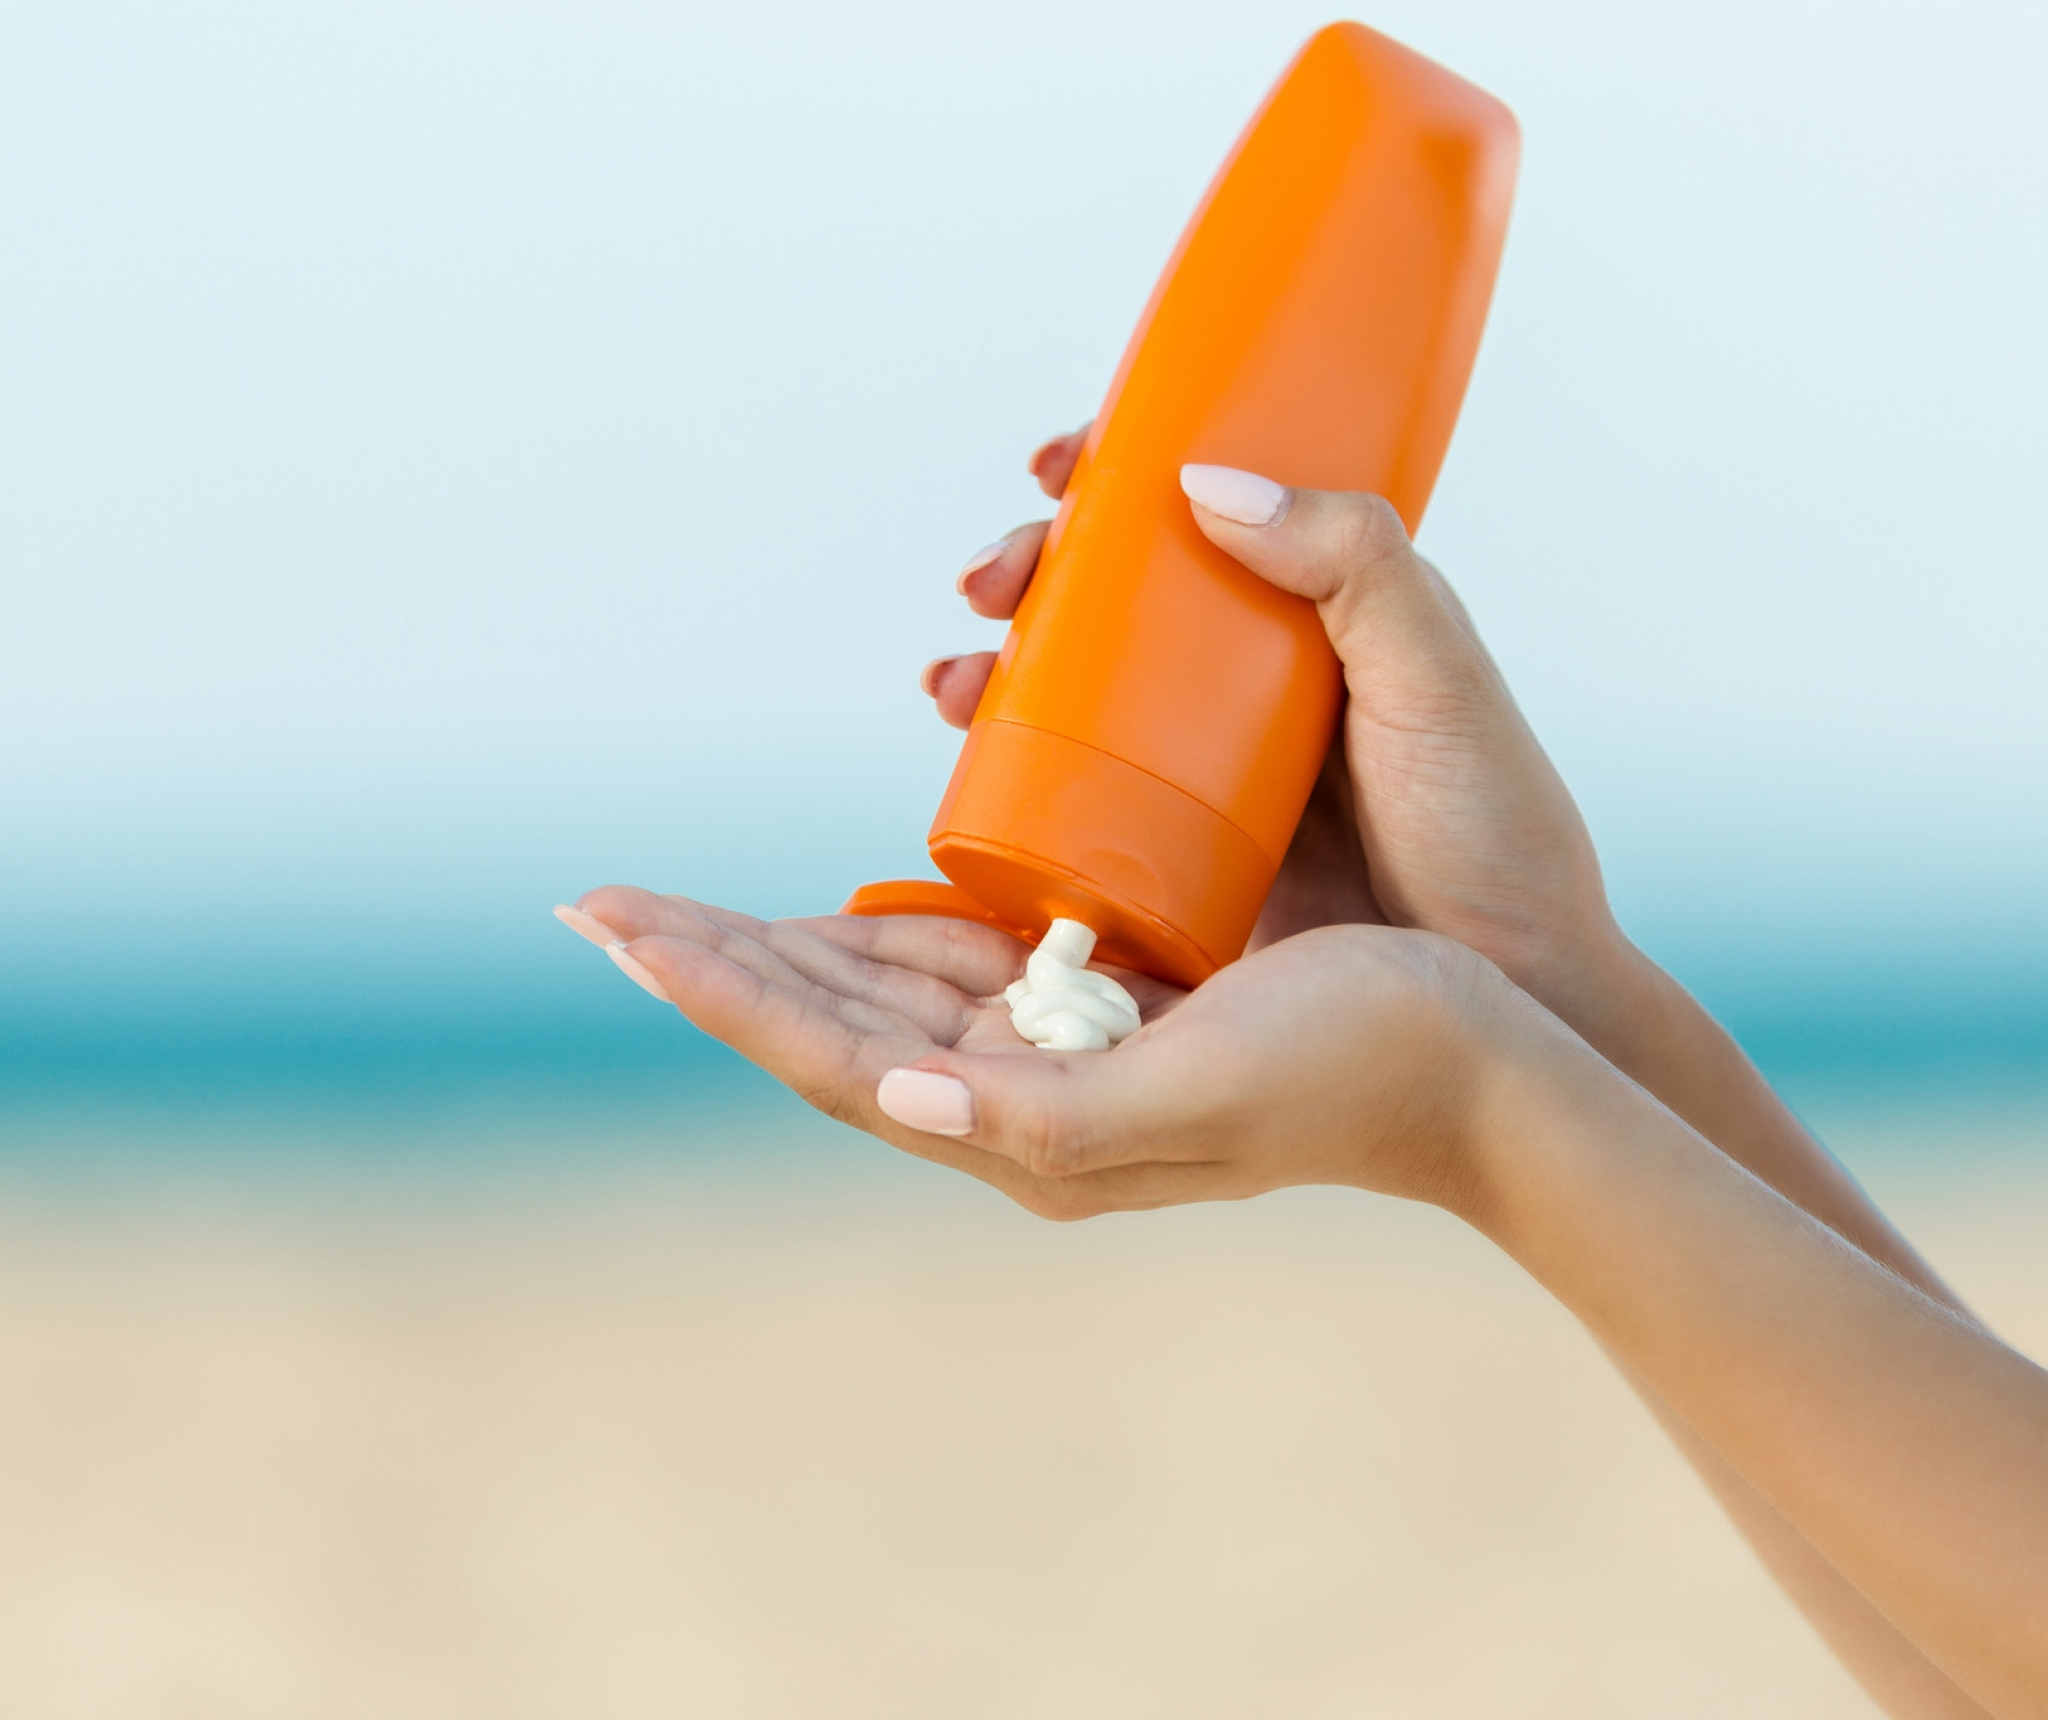 Popular sunscreens now banned in Key West to protect coral reefs